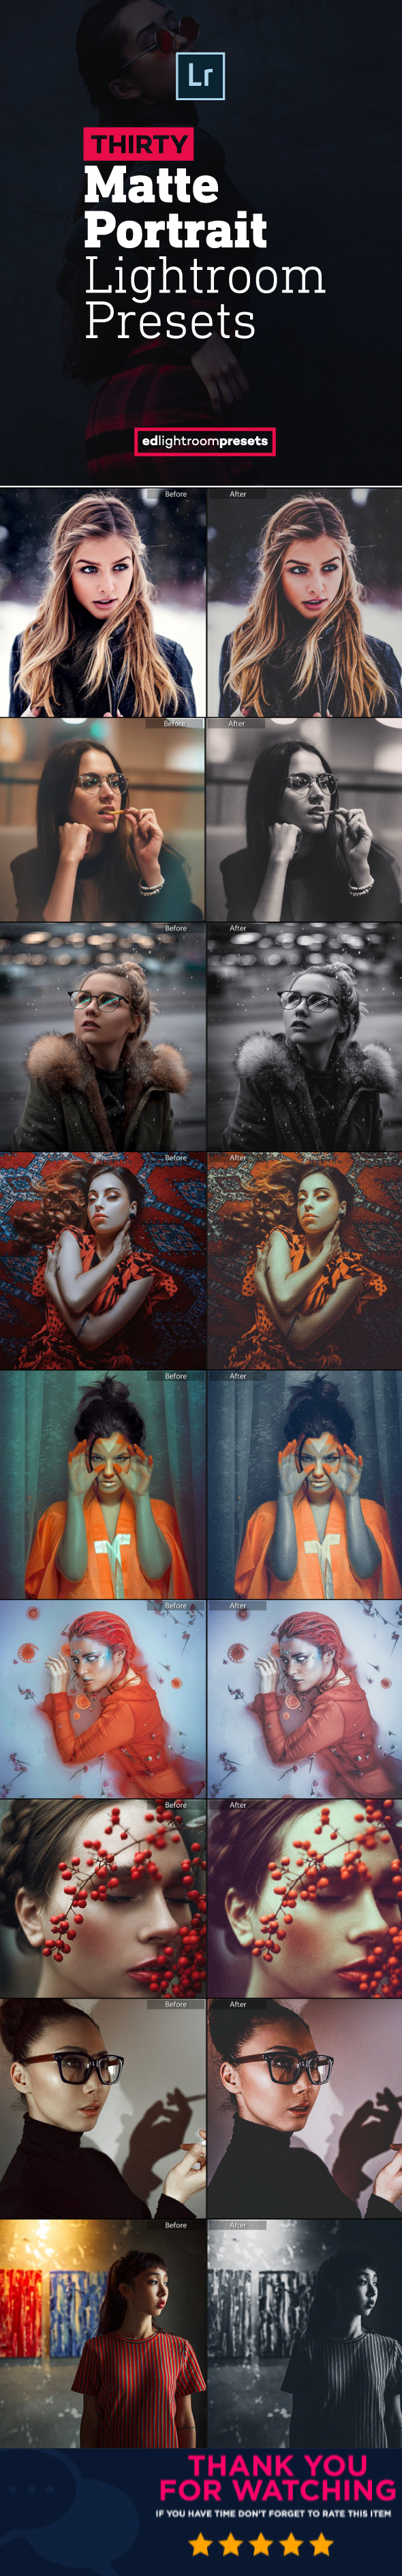 GraphicRiver 30 Premium Matte Portrait Lightroom Presets 21140858